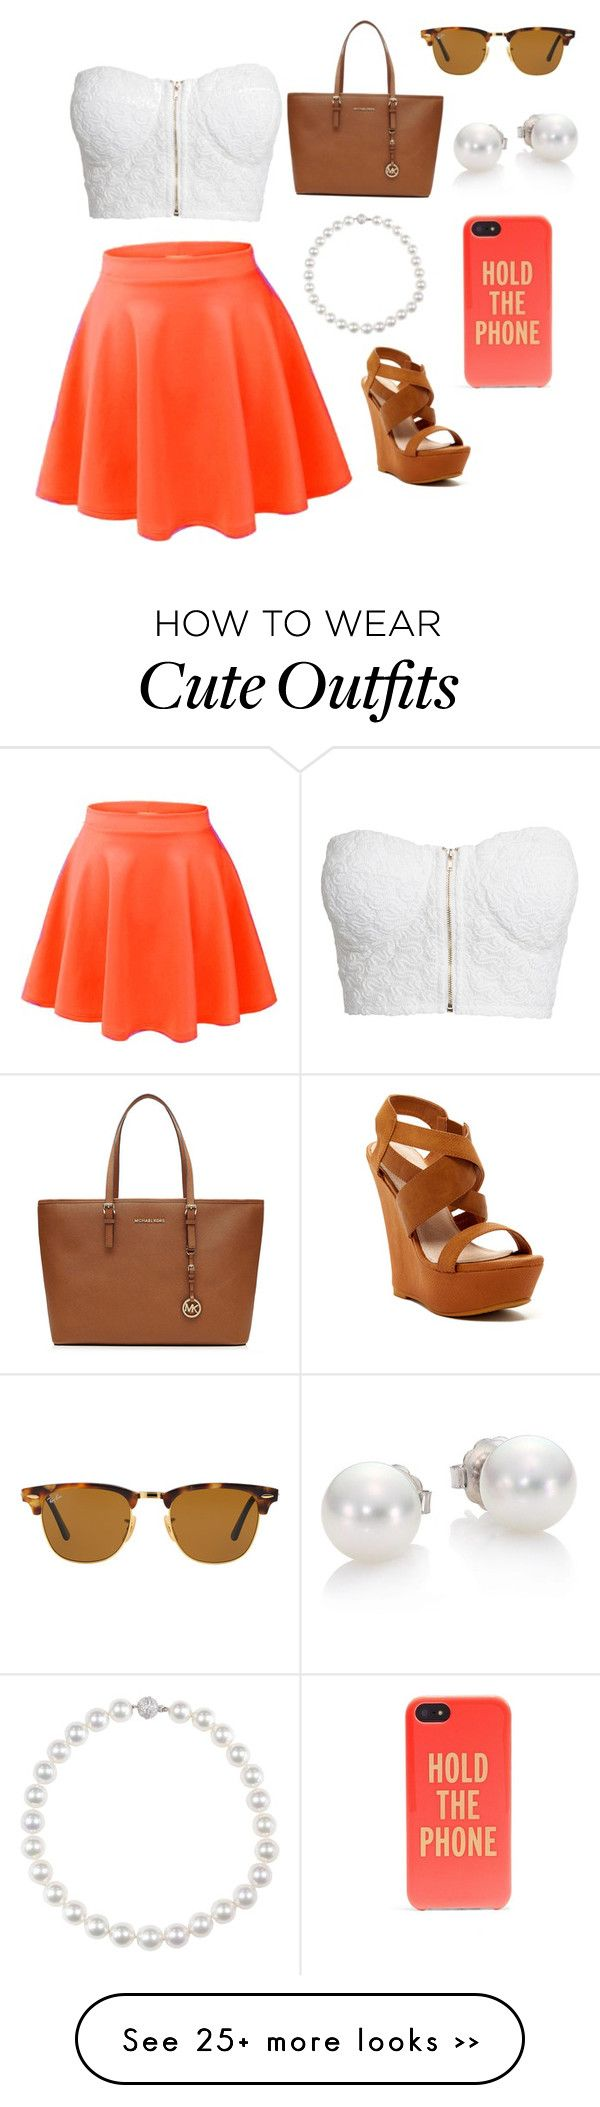 Cute outfit for shopping with friends. by catelynbeecham on Polyvore